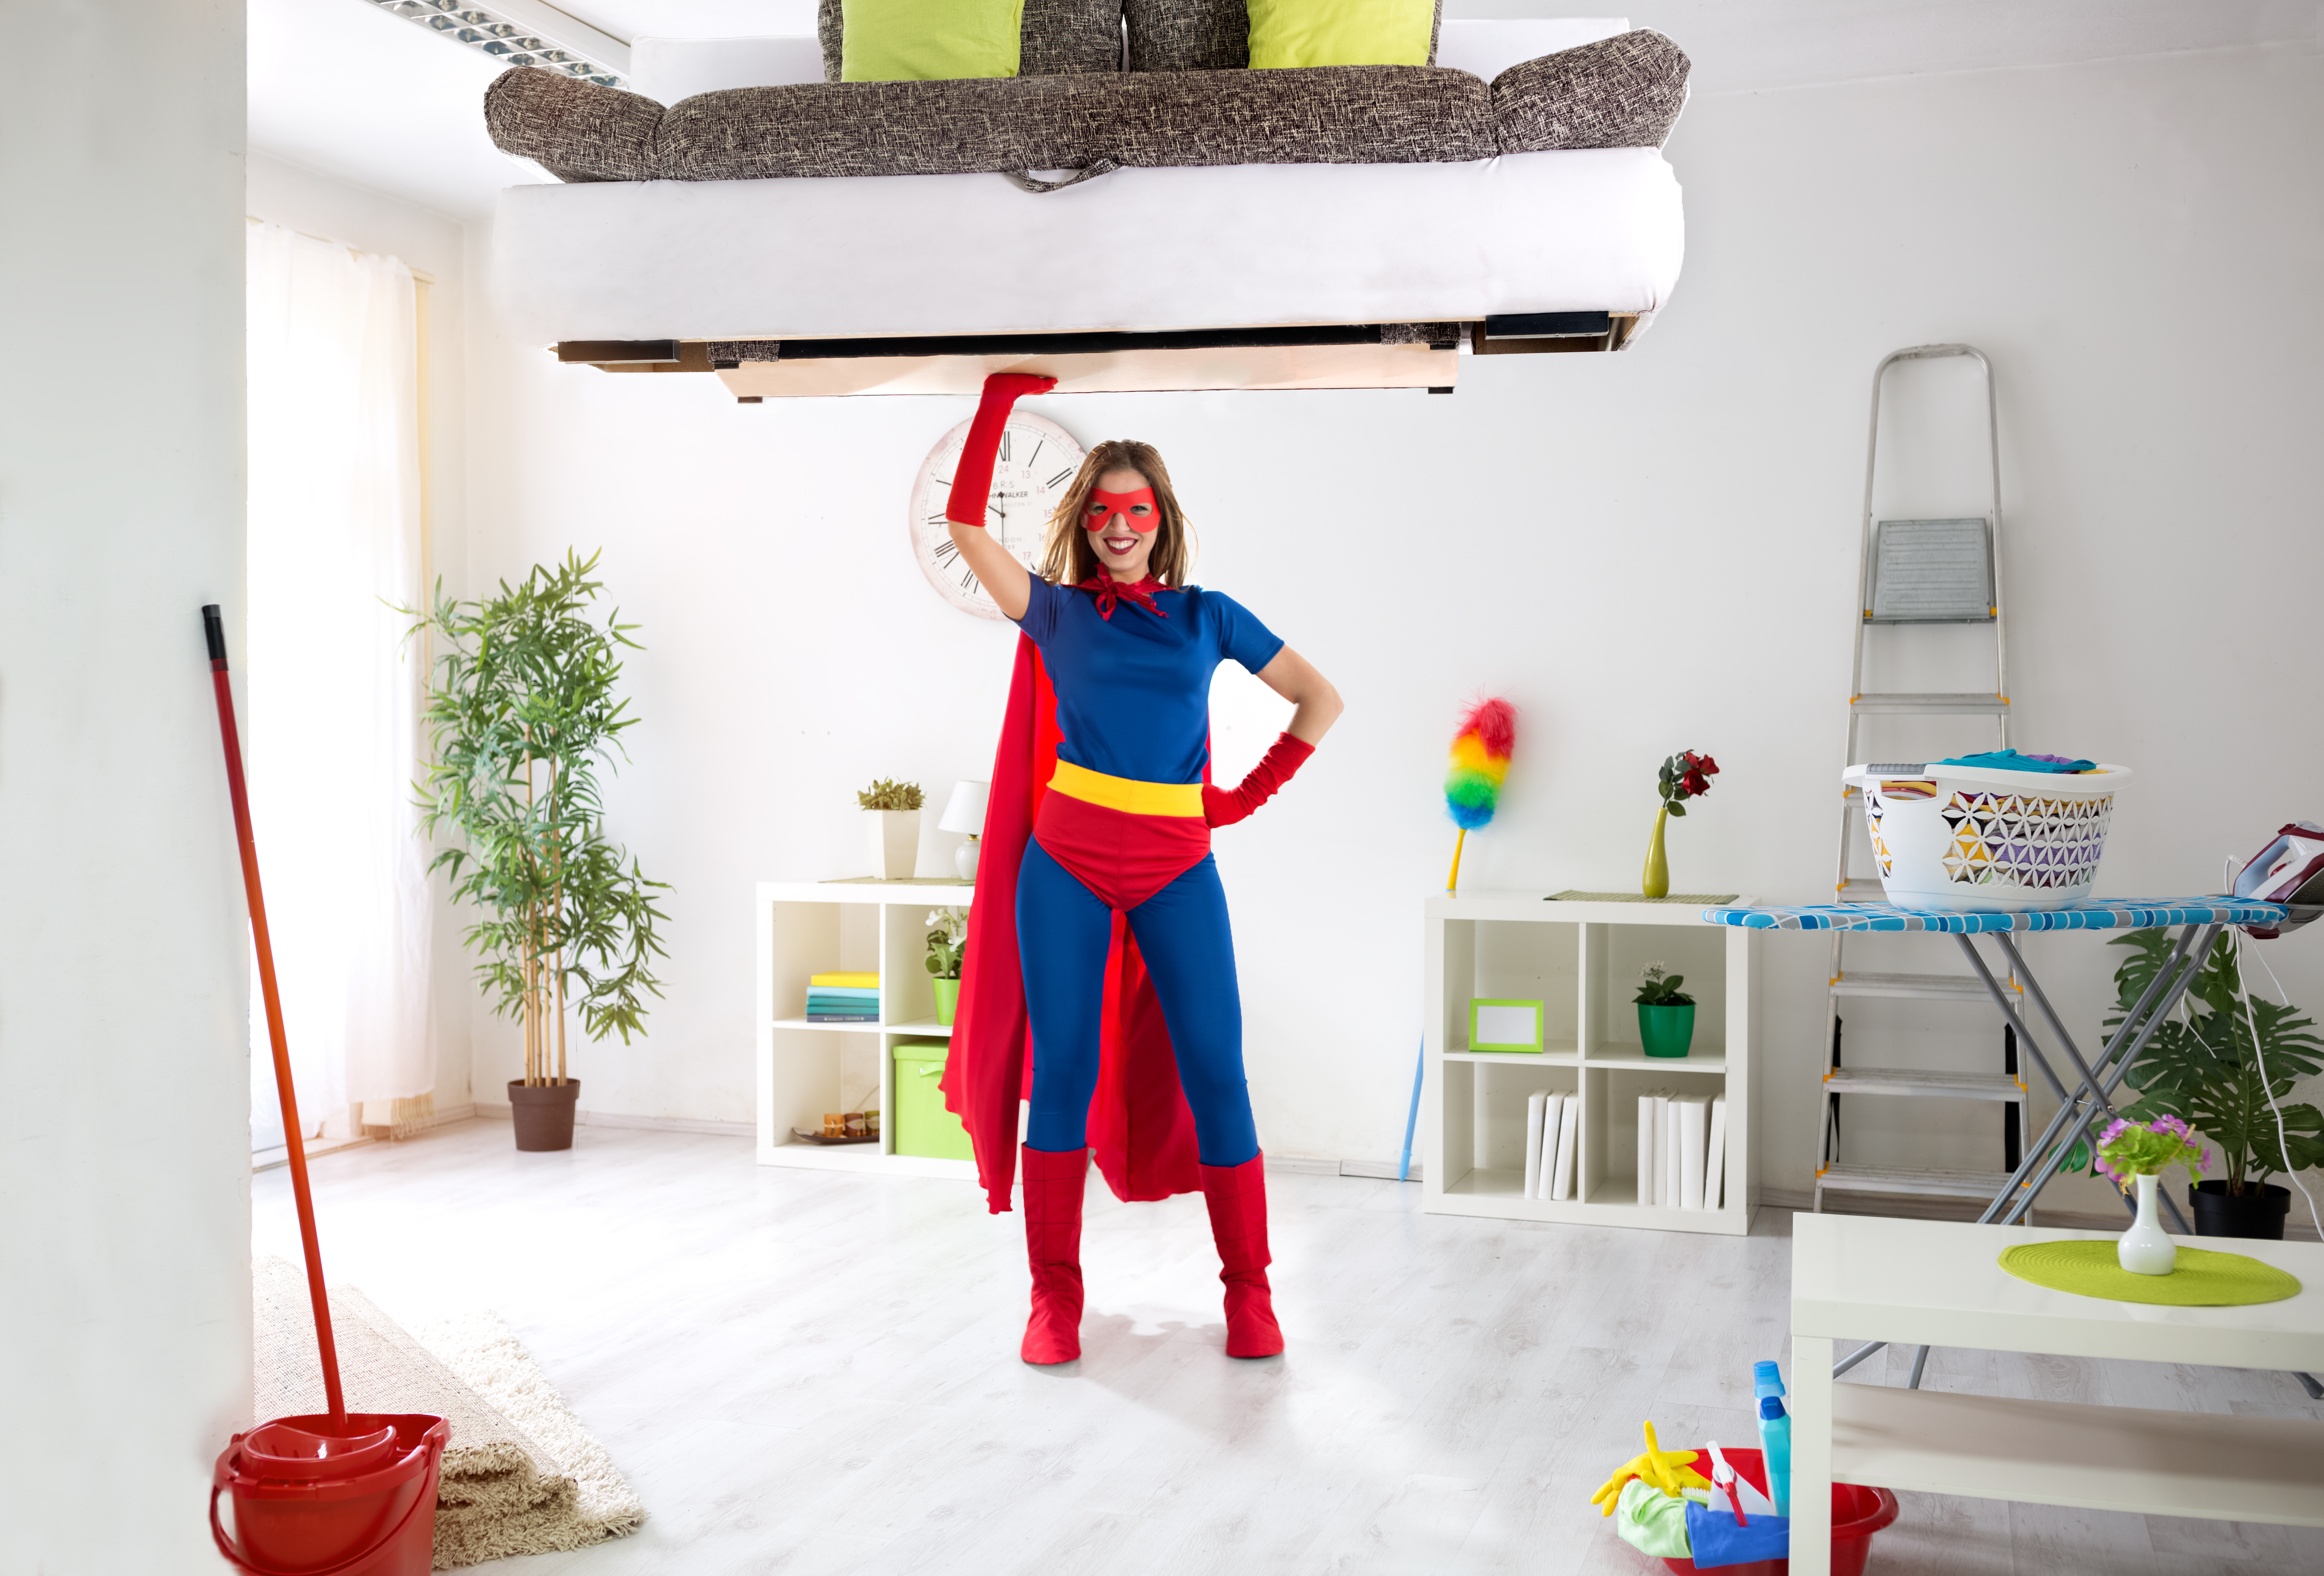 Contest: Let Servpro Cleaning Be Your Spring Cleaning Superhero!